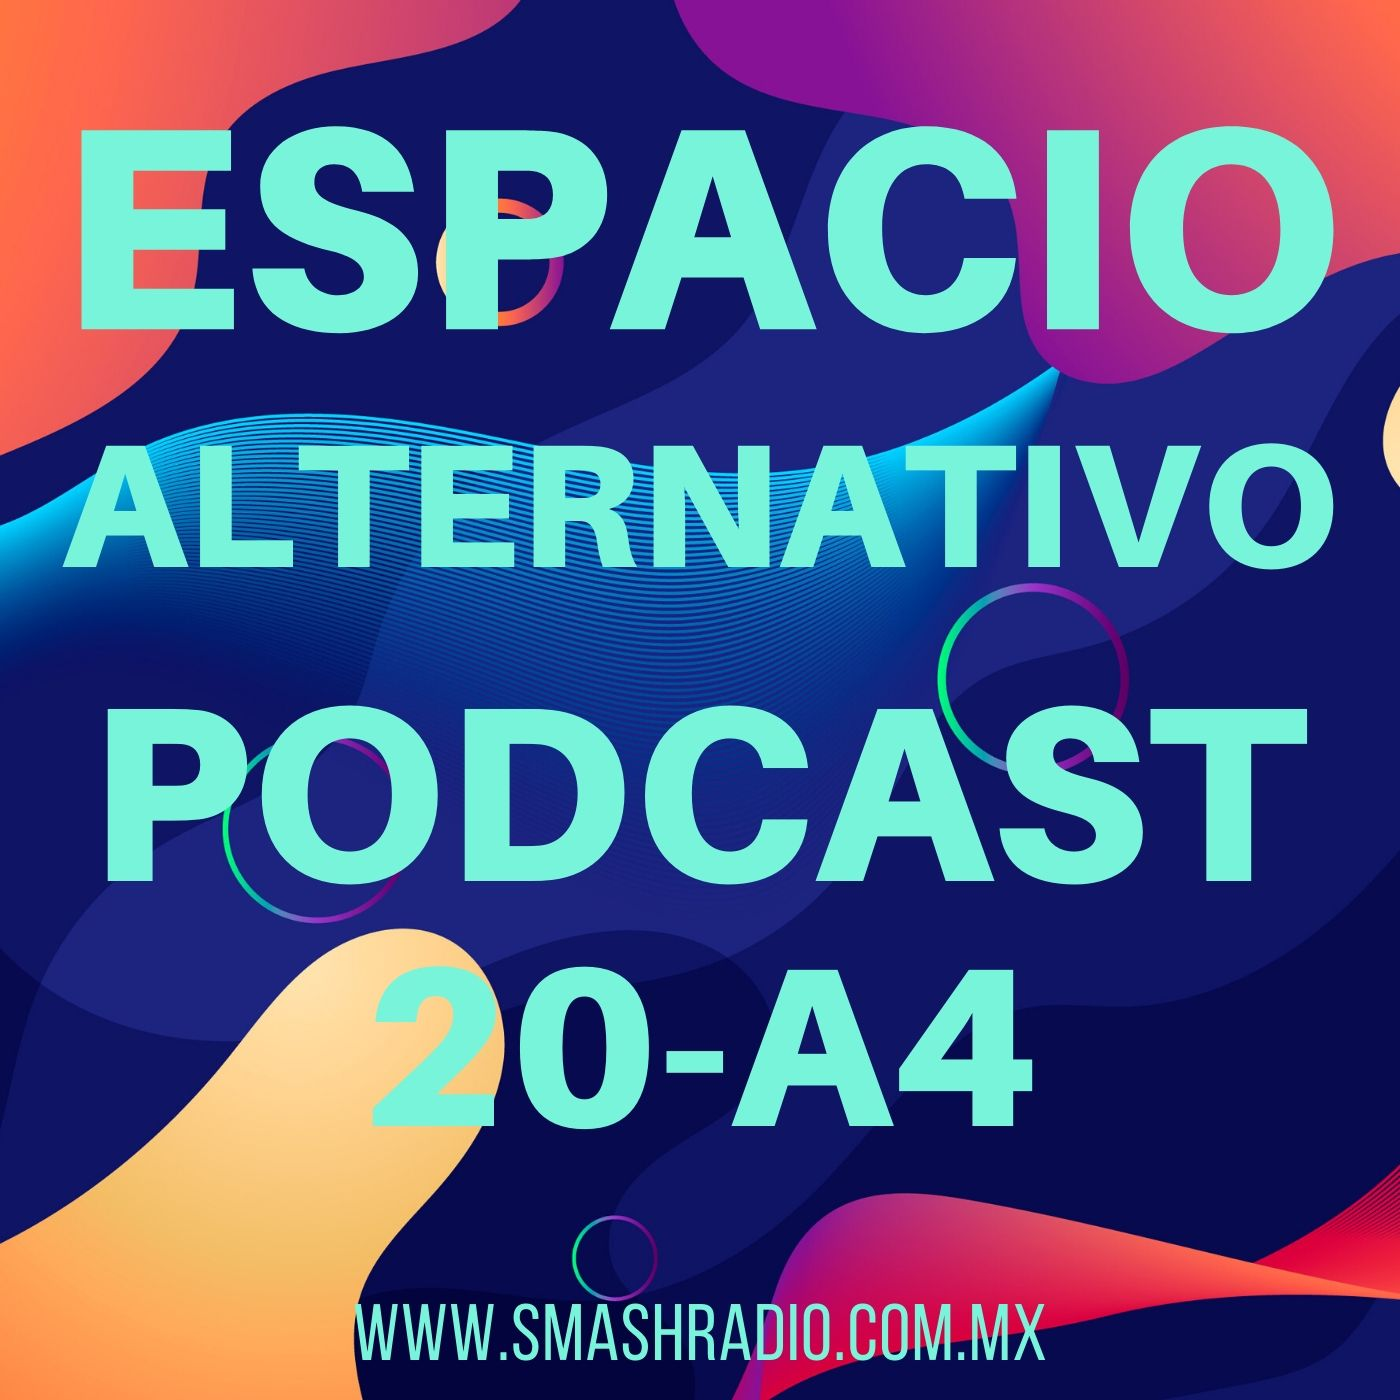 Espacio_Alternativo_Podcast_20-a4